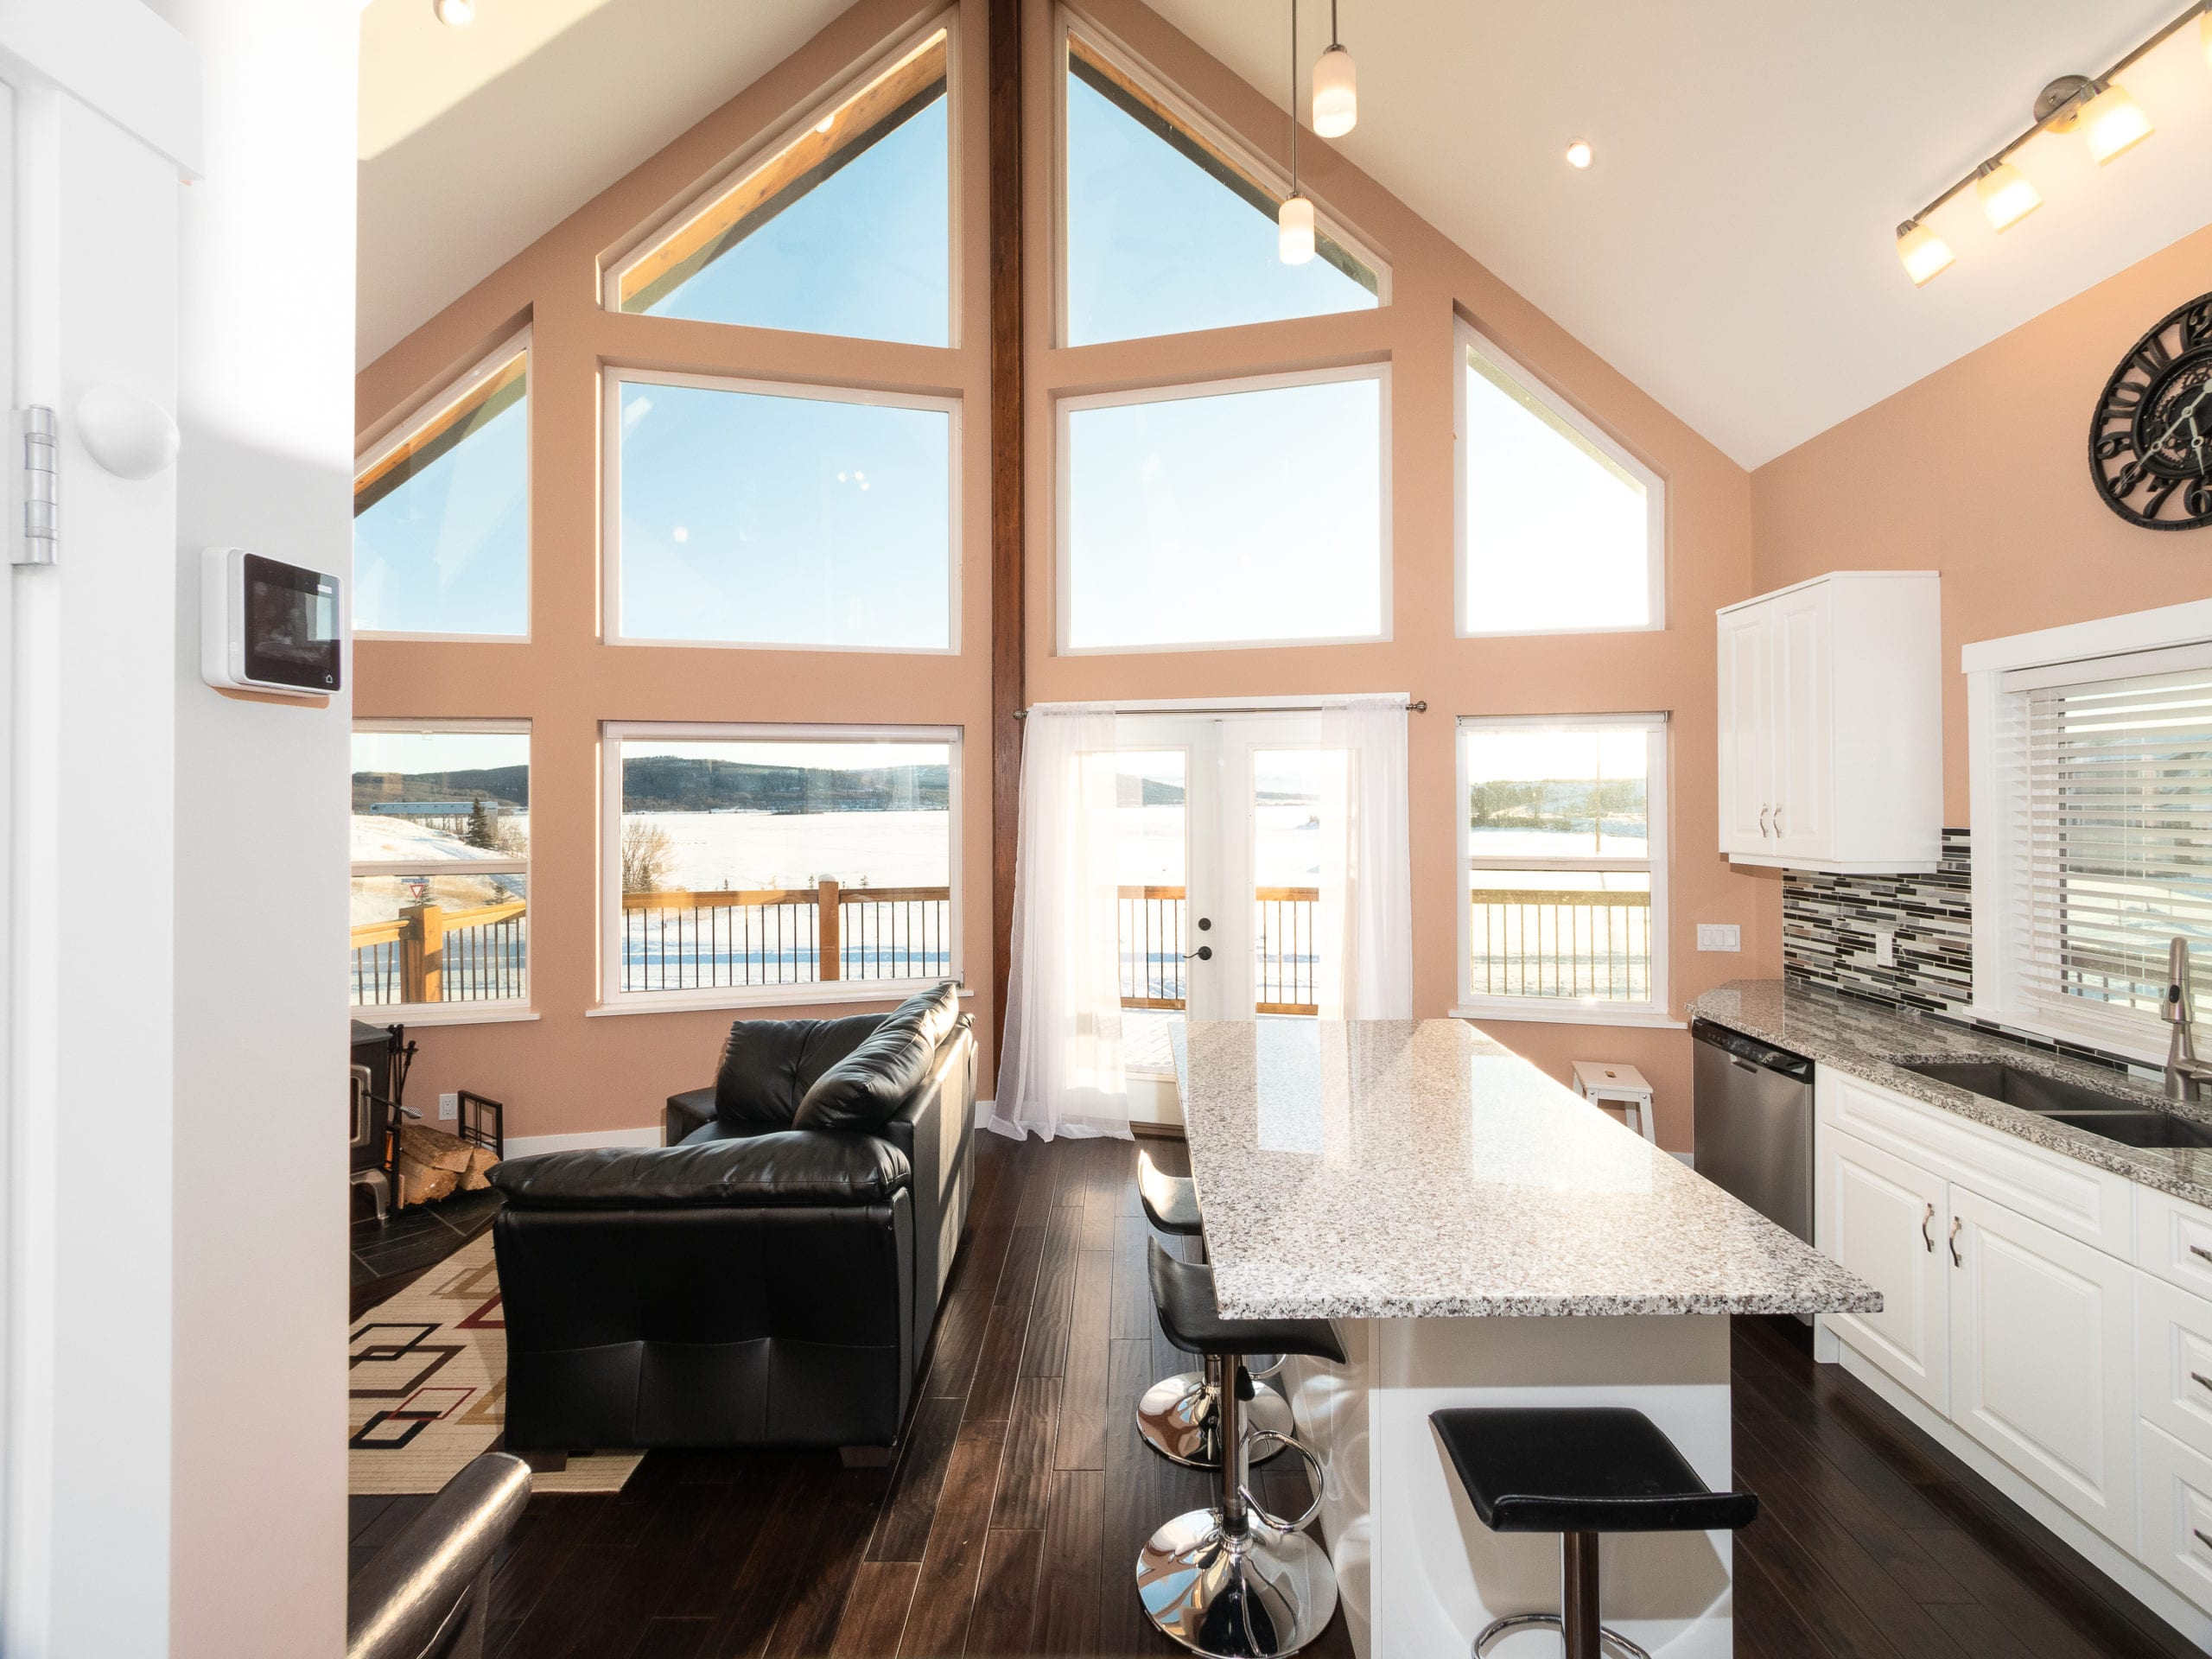 Hello Gorgeous - 456 Cottageclub Cove, Rocky View No. 44, AB - Tara Molina Real Estate (3 of 41)